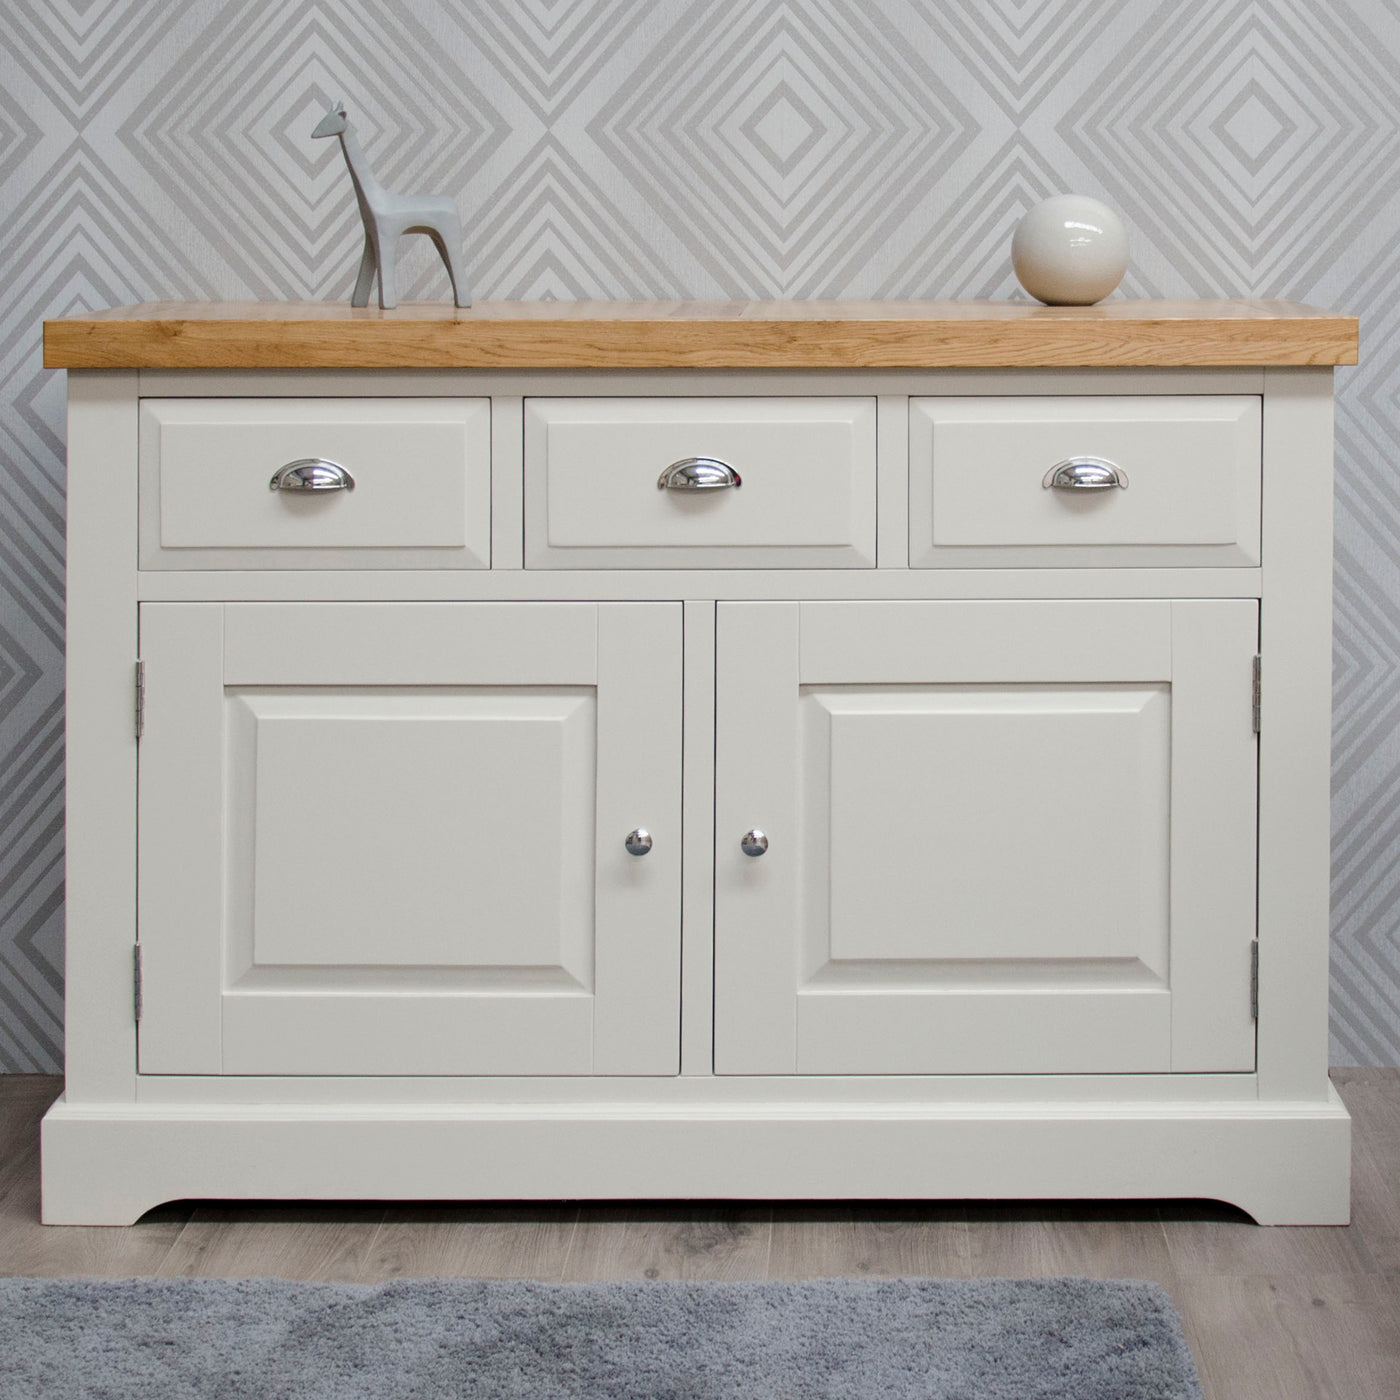 The Easebourne Painted Living & Dining Collection